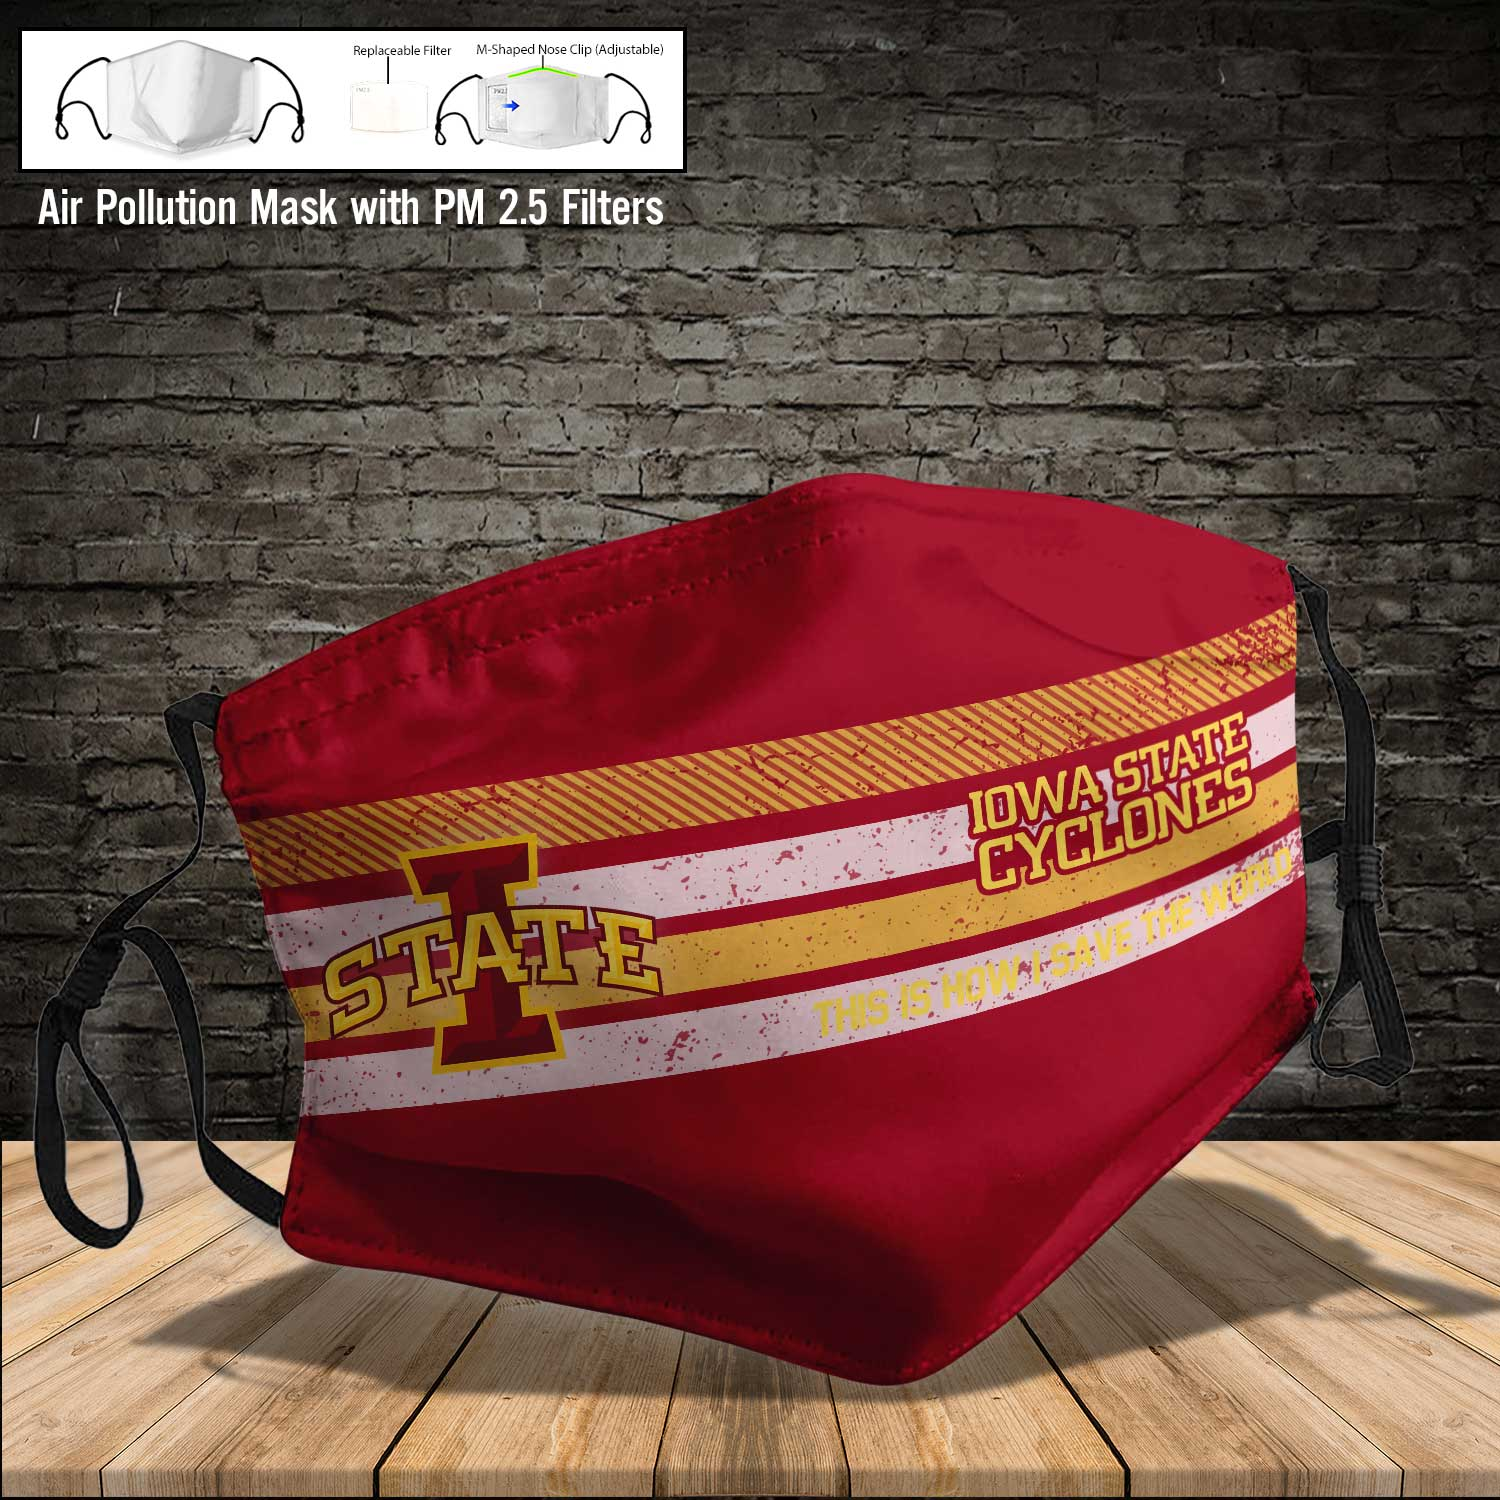 Iowa state cyclones this is how i save the world face mask 4